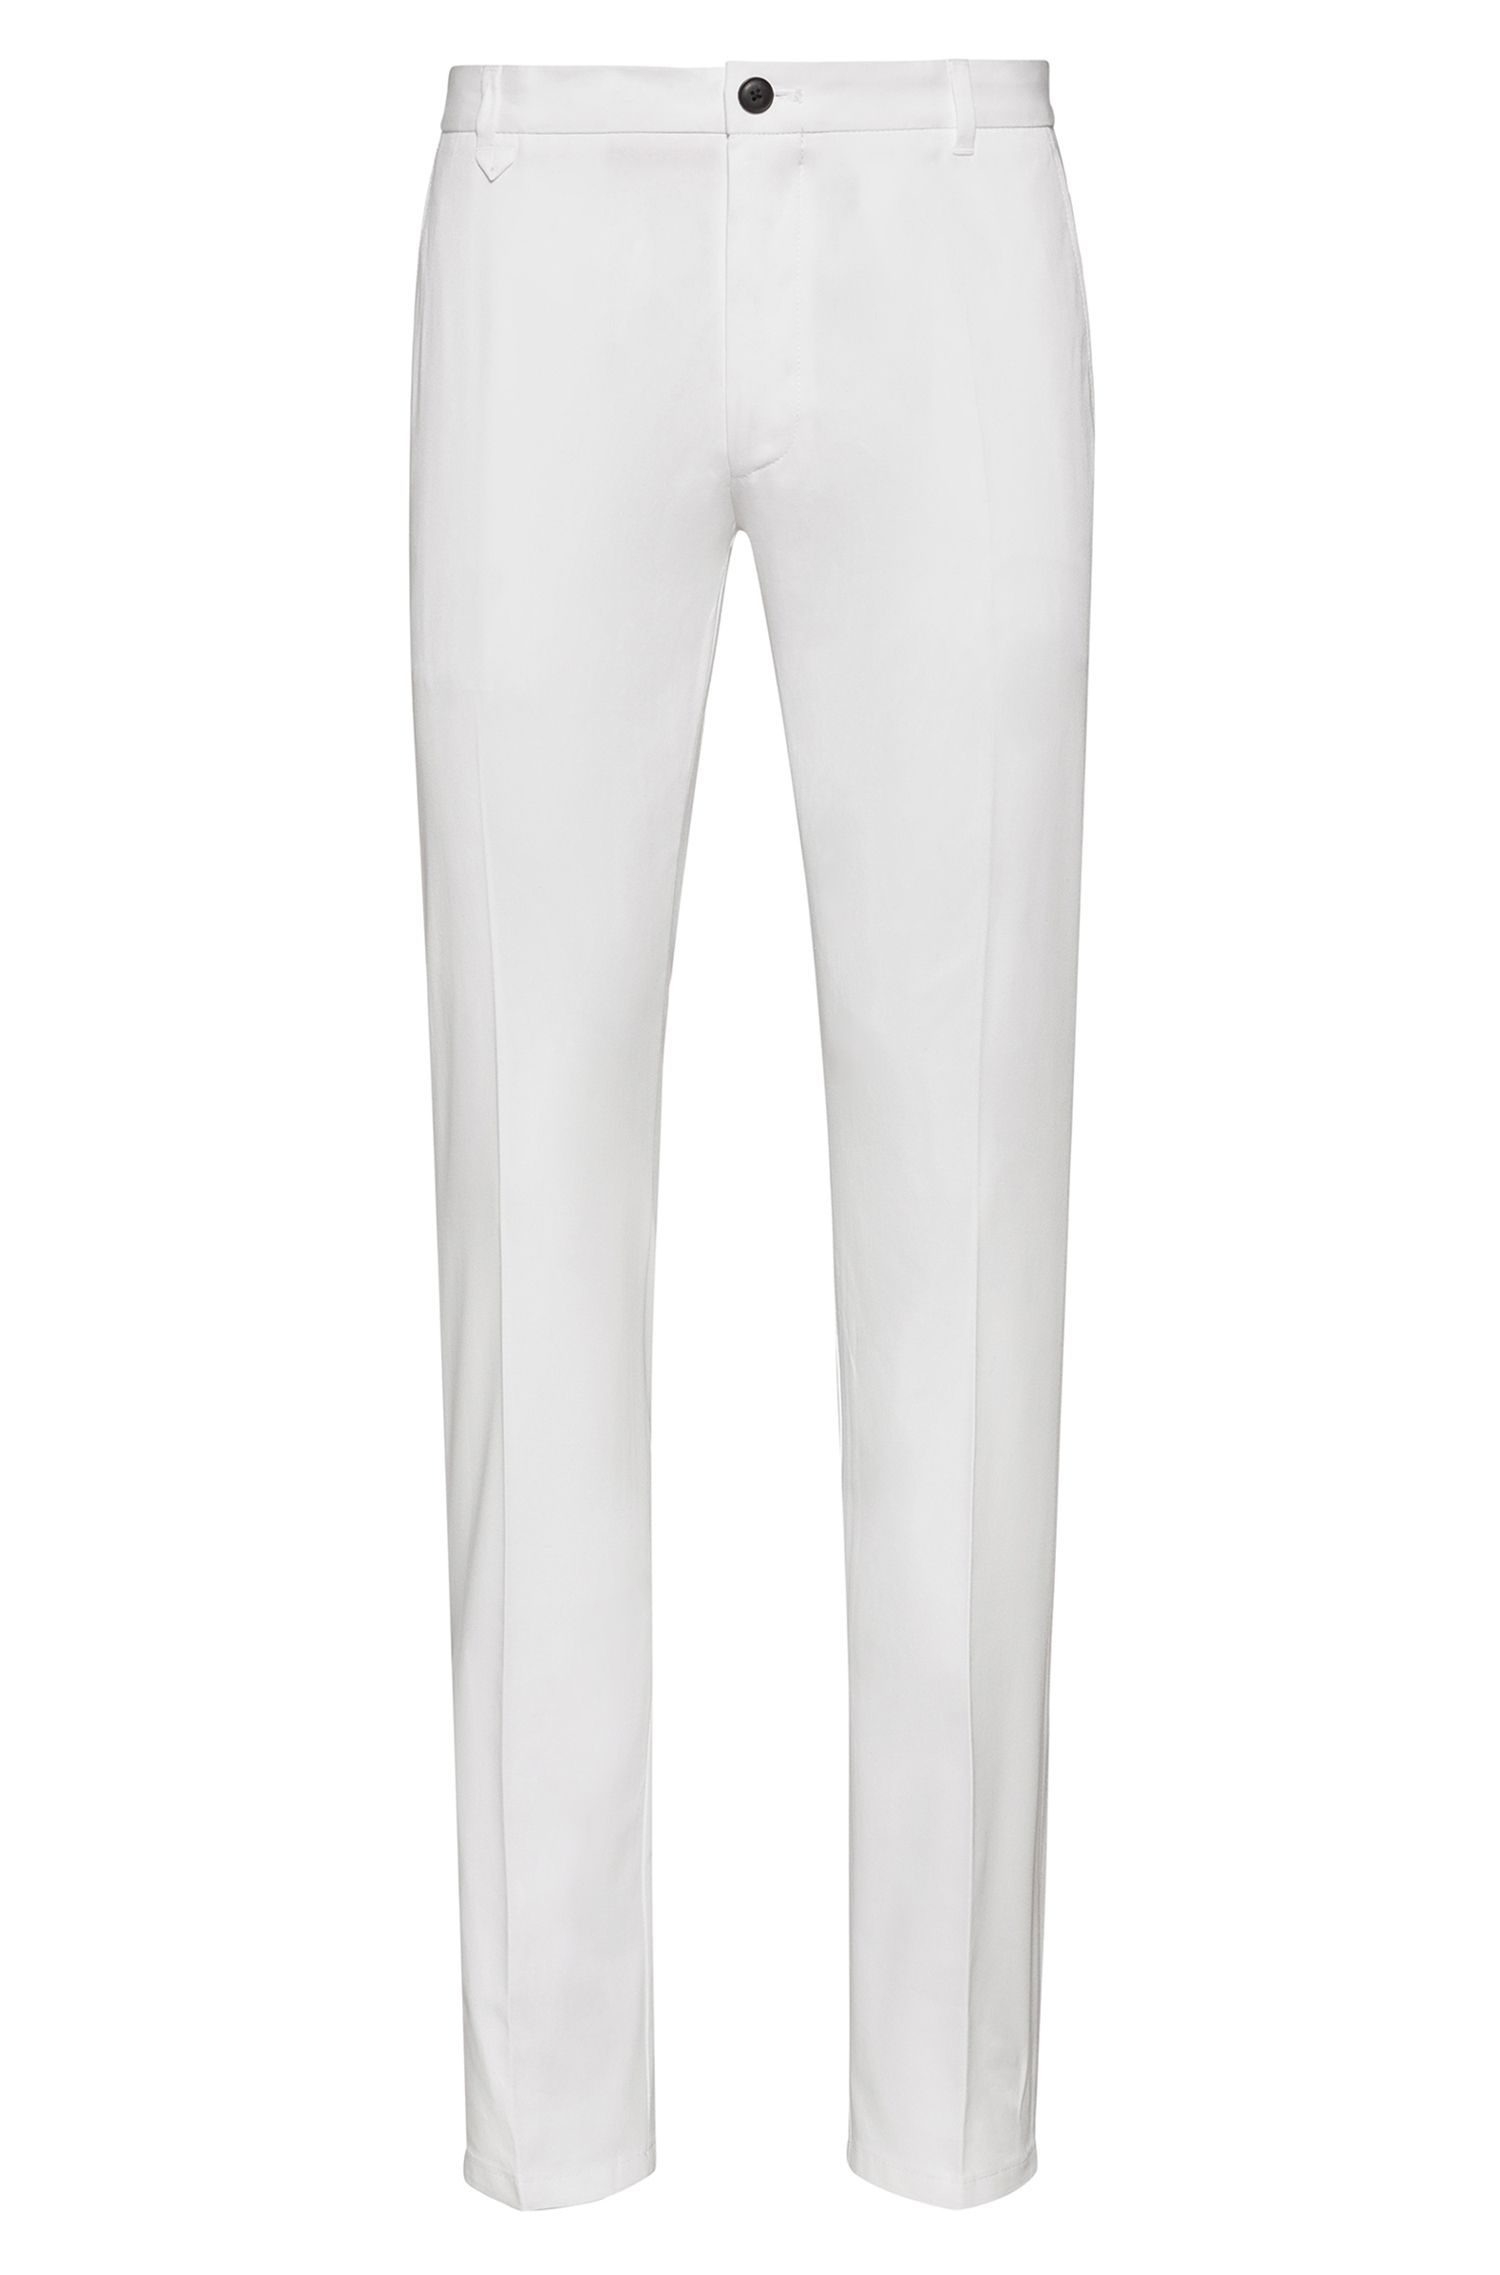 Extra-slim-fit stretch-cotton trousers with signature detailing, White